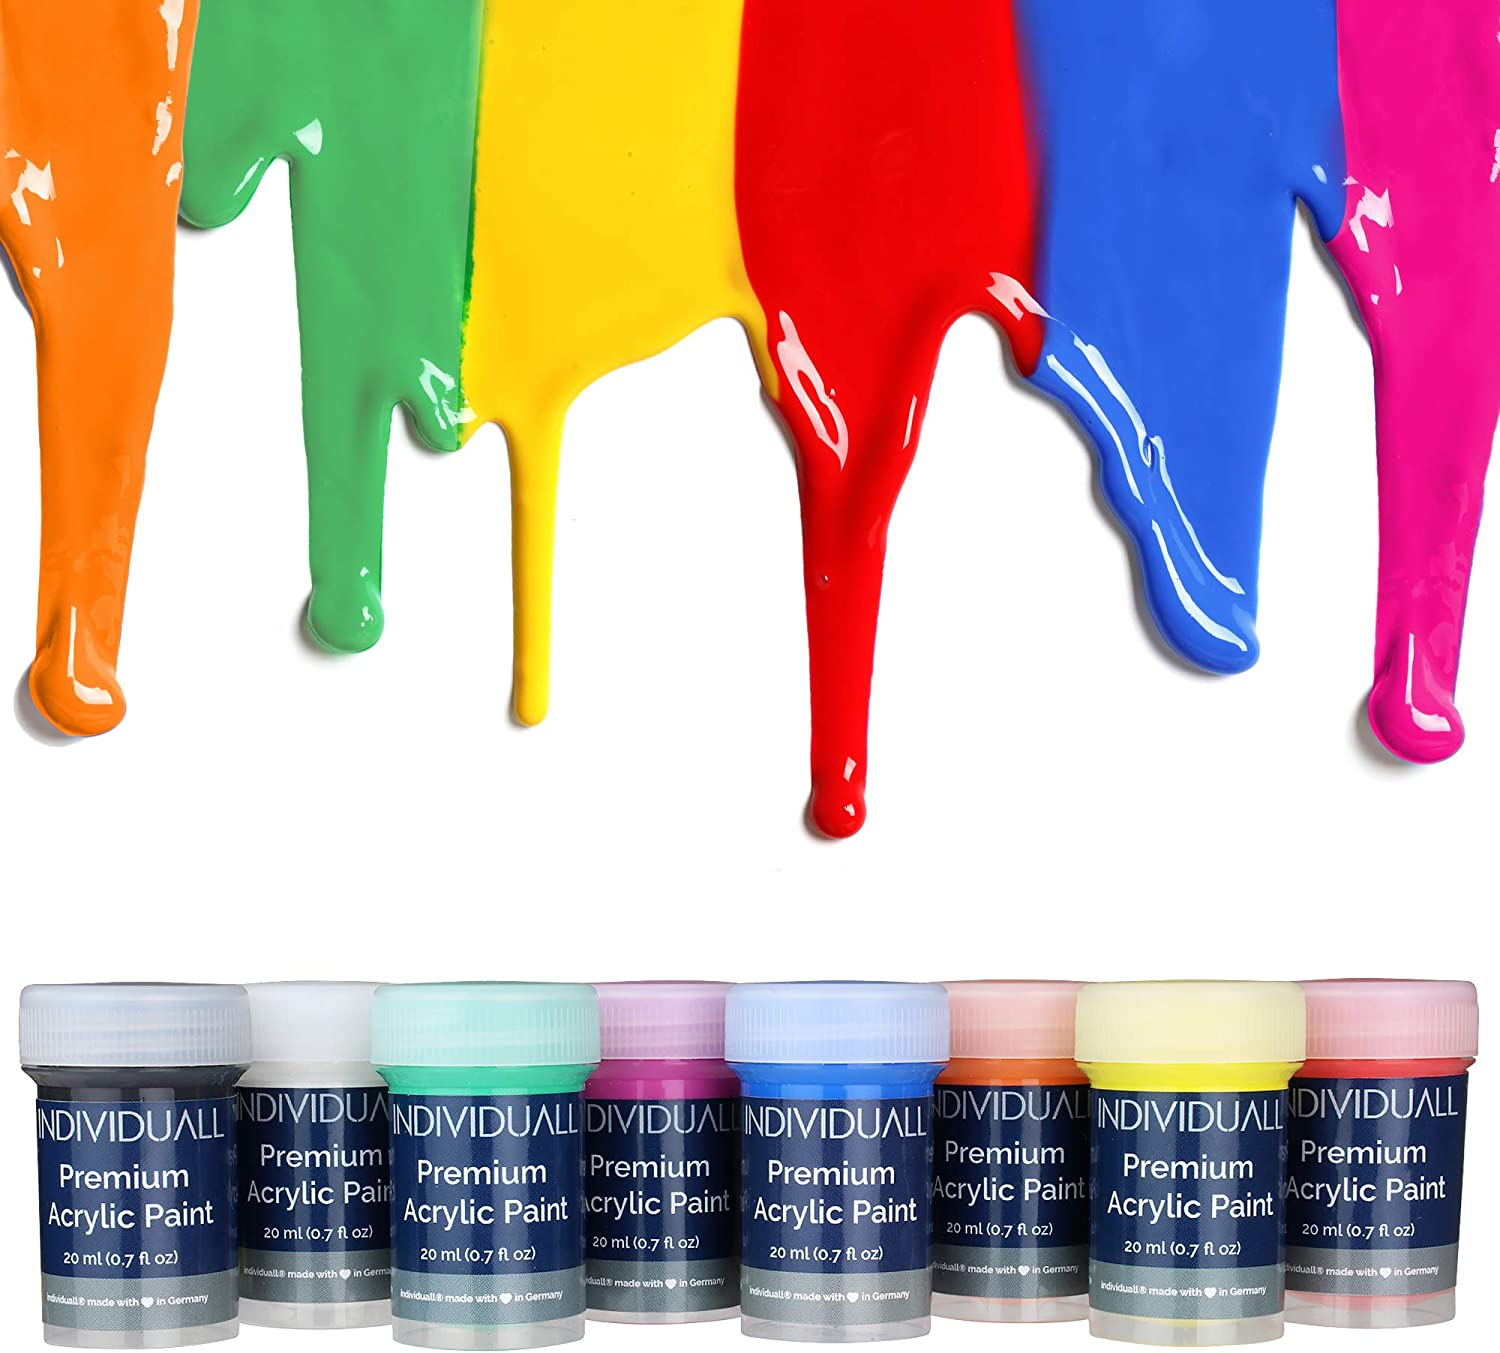 Individuall Premium Acrylic Paint Set